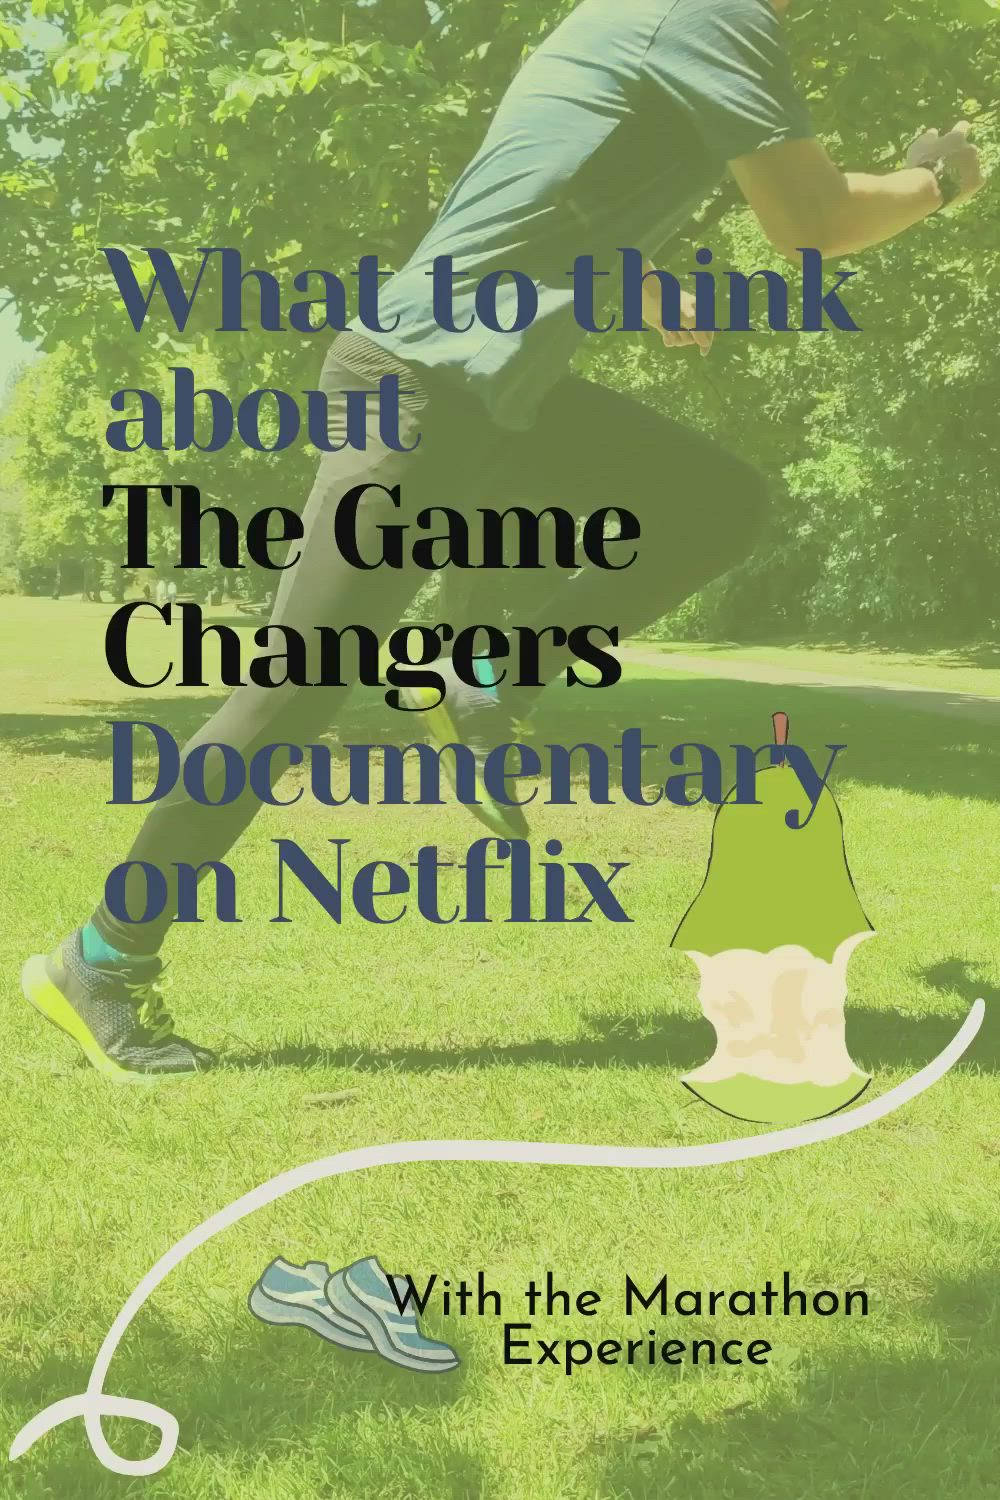 What To Think About The Game Changers Documentary On Netflix The Marathon Experience Video In 2020 Documentaries Phonics Games Online Netflix Documentaries